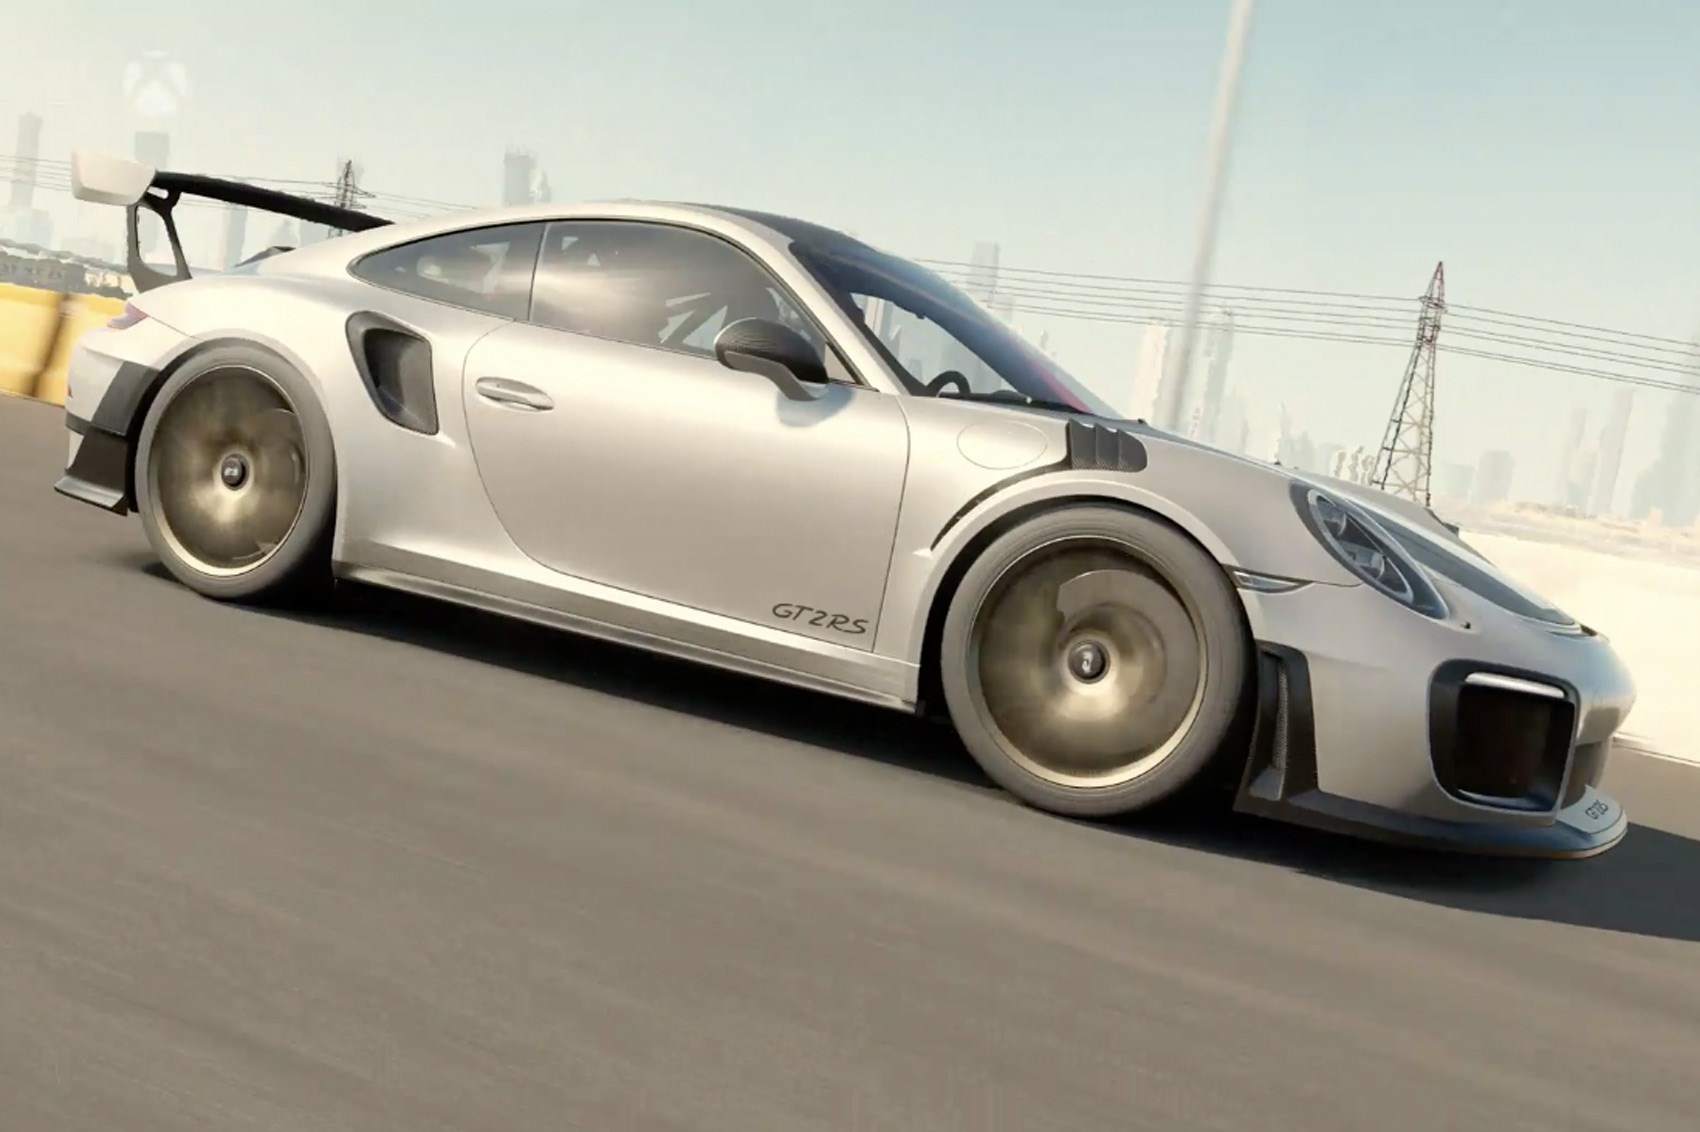 porsche_911_gt2rs_95 Extraordinary Porsche 911 Gt2 Rs Used Cars Trend